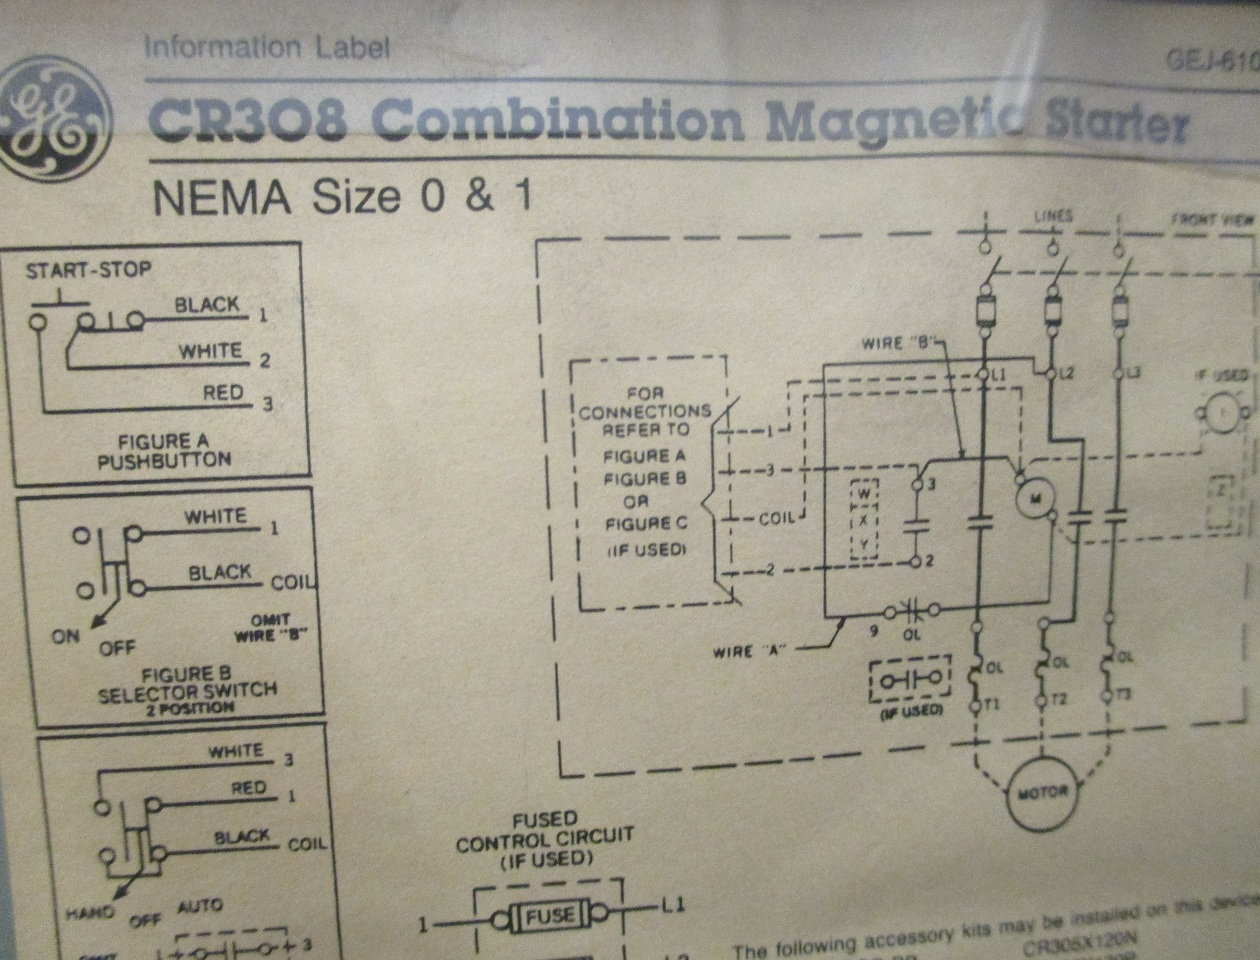 dis3585 ge combination magnetic starter cr308 600v max complete enclosure 300 line control 3?resize\=665%2C507 ge cr 308 motor starter wiring diagram wiring diagrams  at crackthecode.co